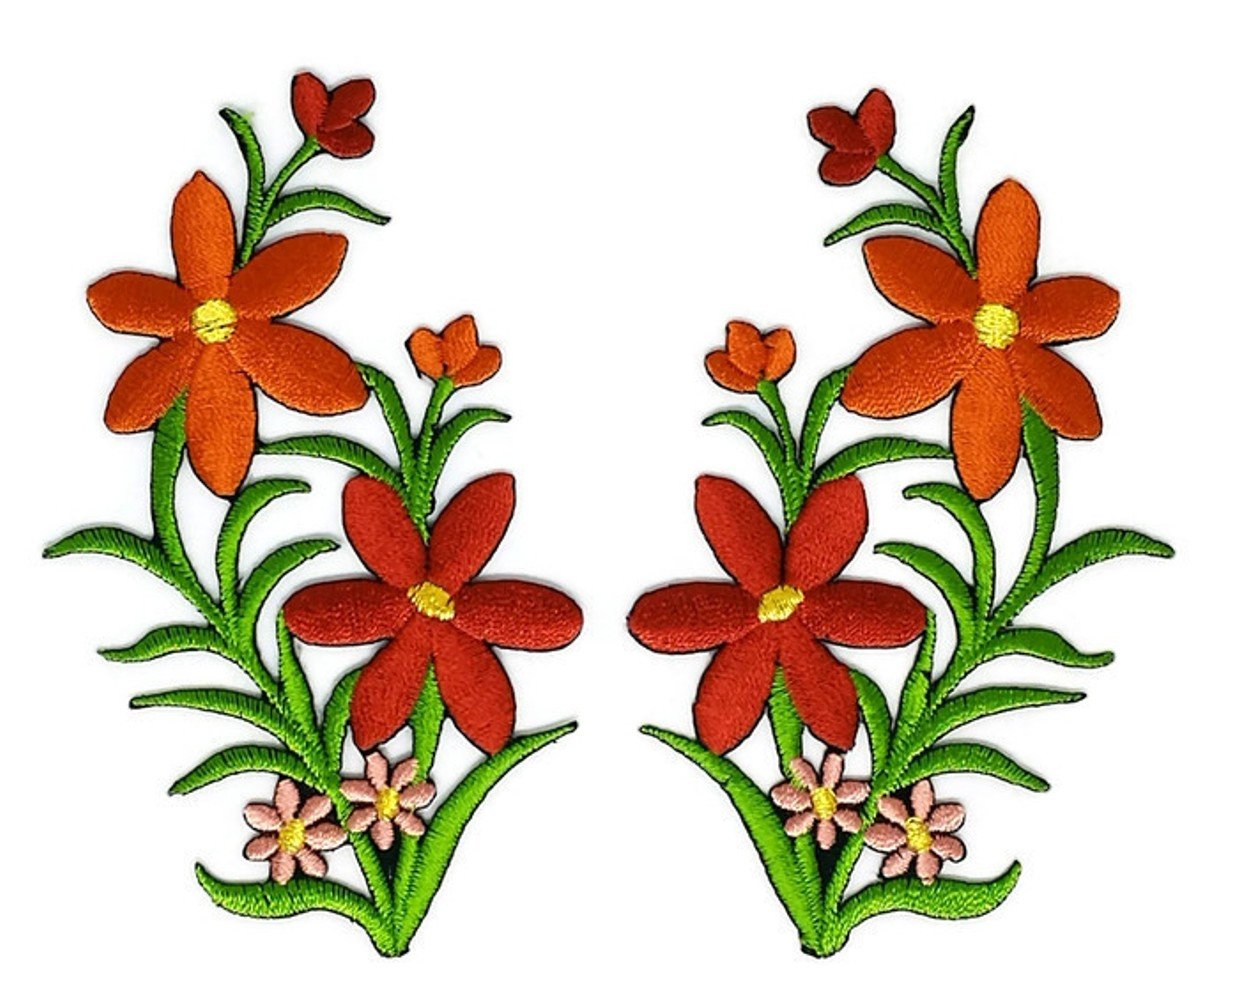 Brown Orange Pair Flower Floral Bouquet Embroidered Sew Iron on Patch Cartoon Sew Iron on Embroidered Applique Craft Handmade Baby Kid Girl Women Cloths DIY Costume Accessories Iron on patches